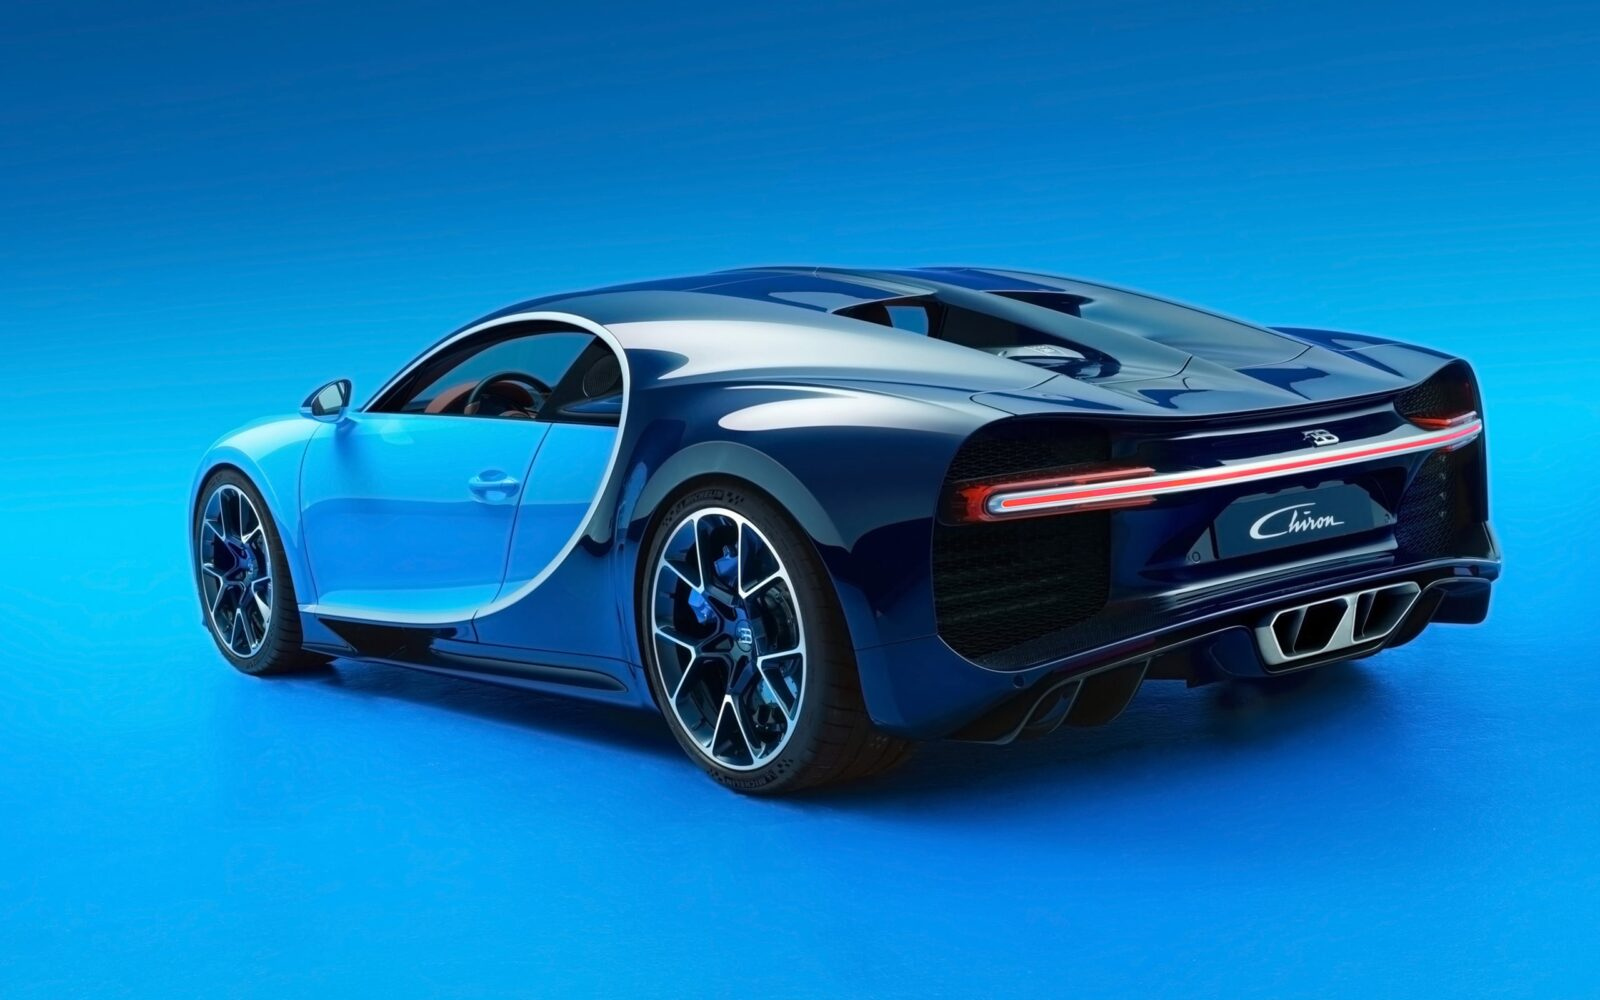 2017 Bugatti Chiron wallpapers